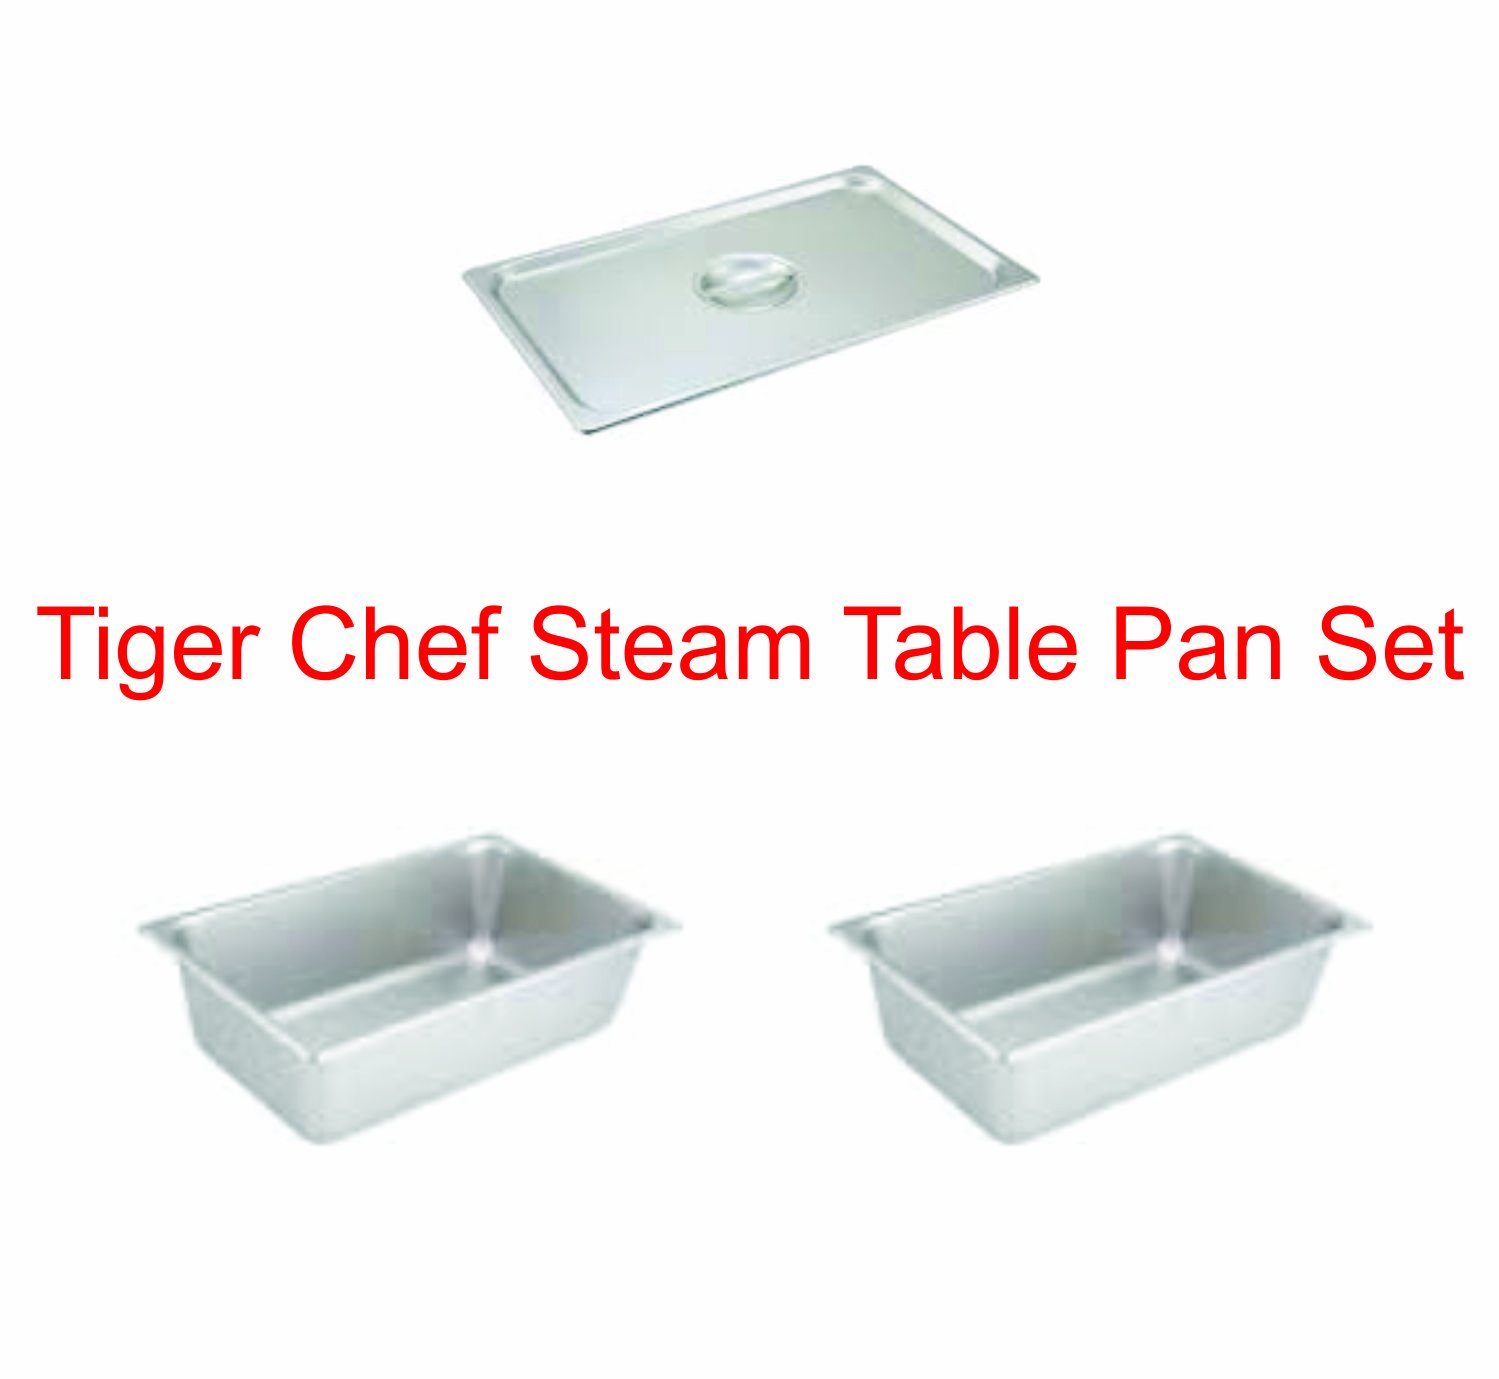 TigerChef TC-20335 Table Pan Set (Pack of 3)